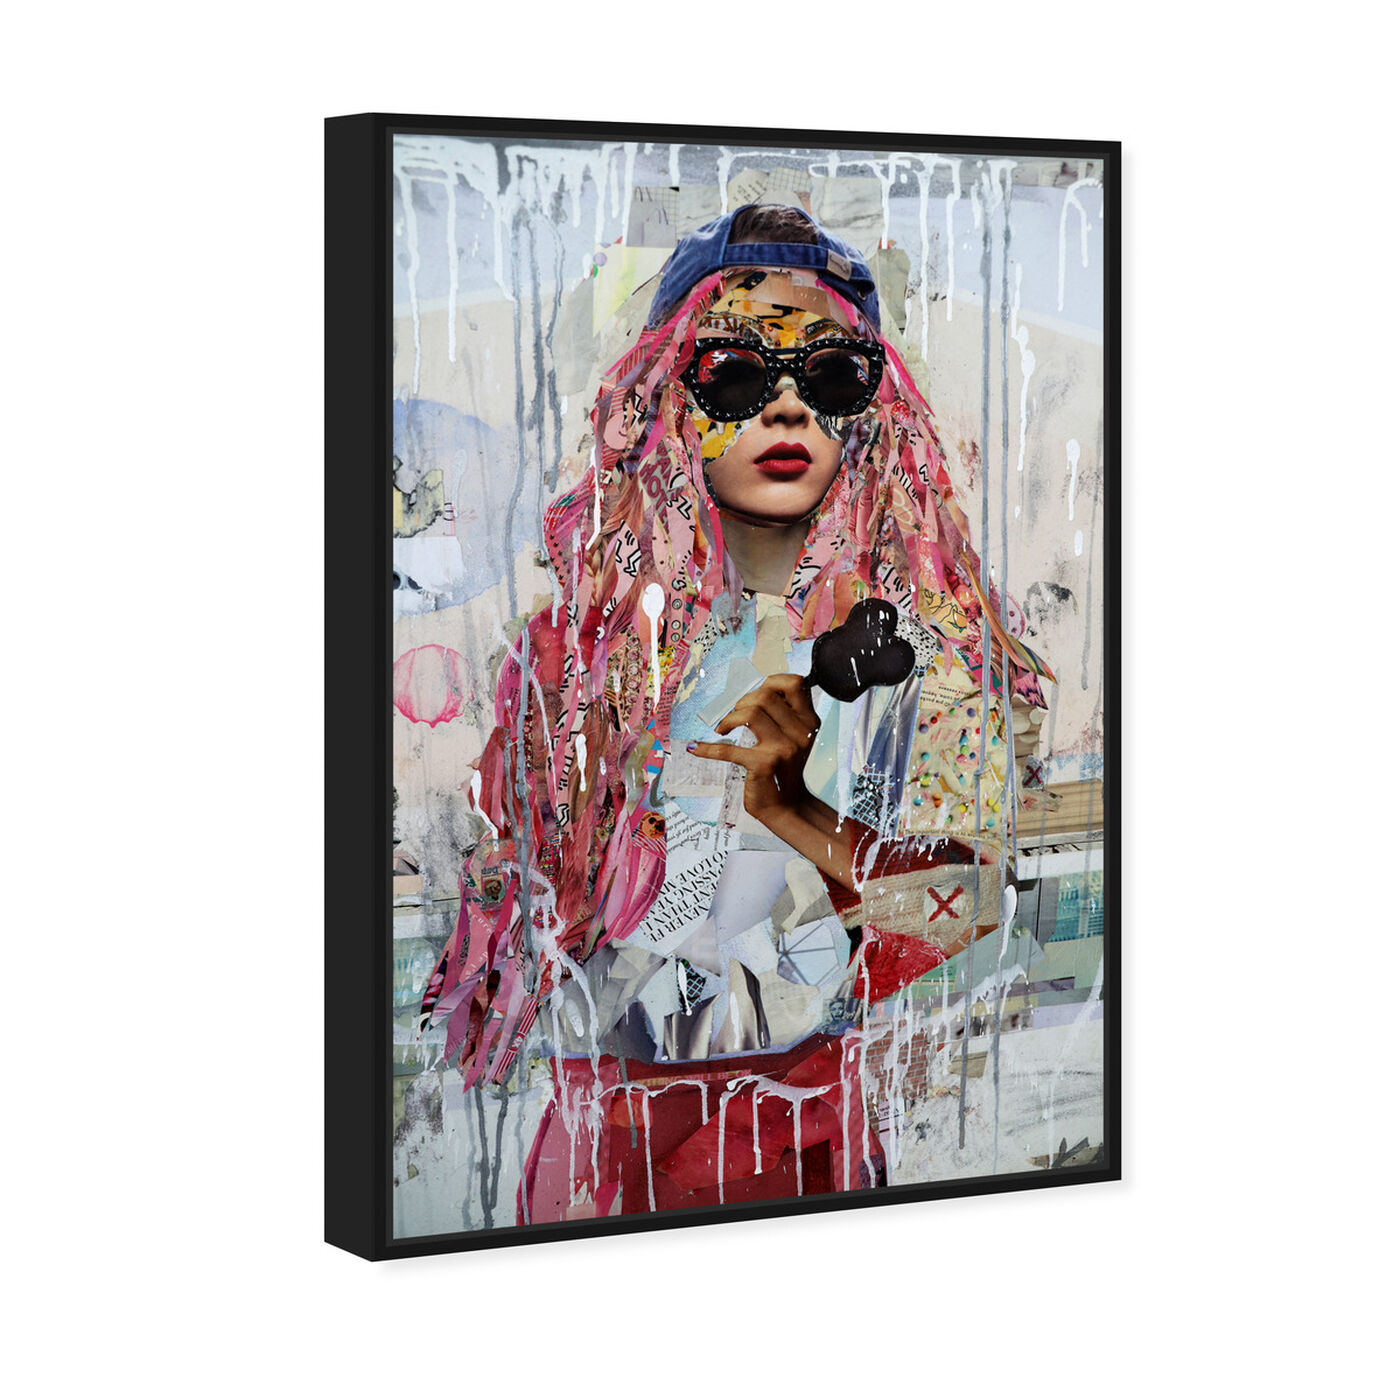 Angled view of Katy Hirschfeld - Urban Streetwise Glam featuring fashion and glam and portraits art.